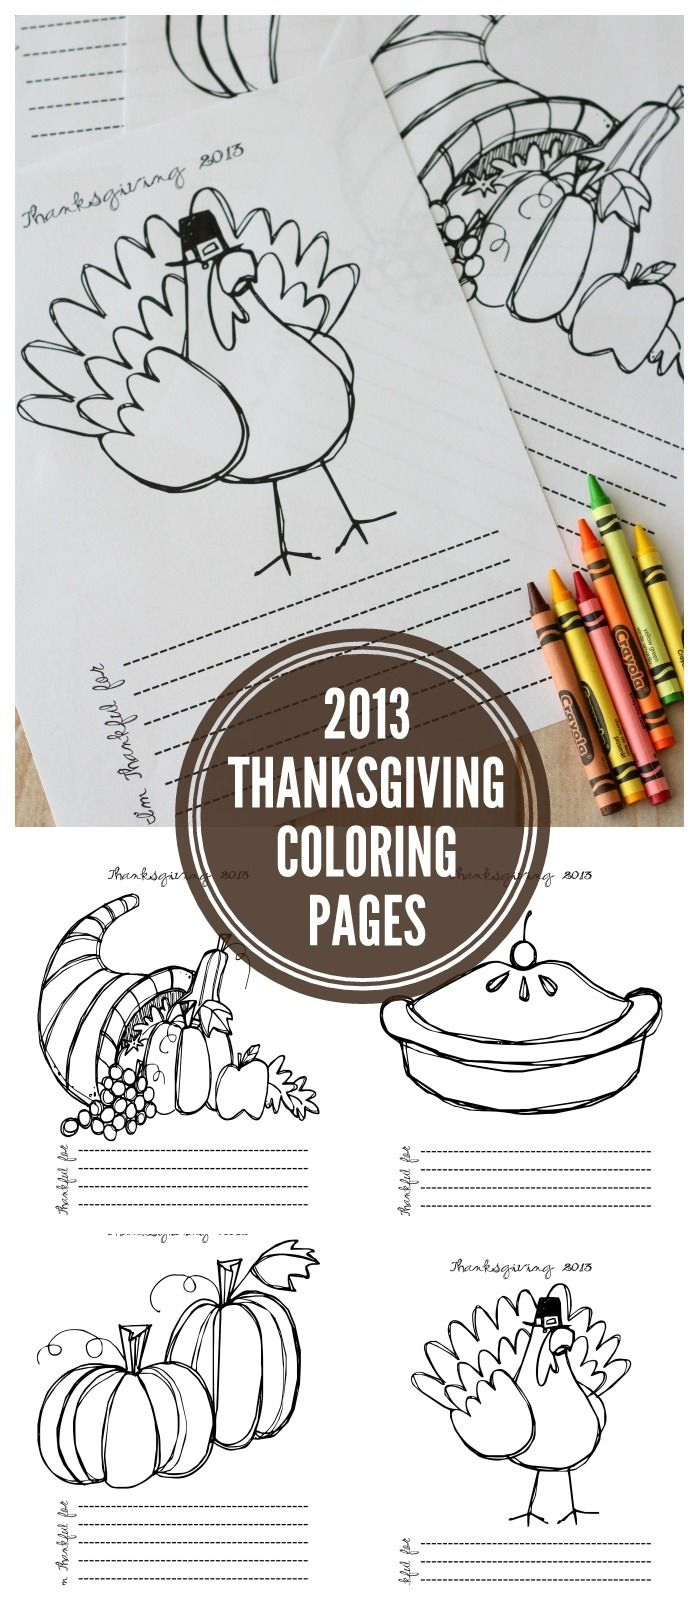 Free Thanksgiving Coloring Pages for the Kids! { lilluna.com } #thanksgiving #coloringpages